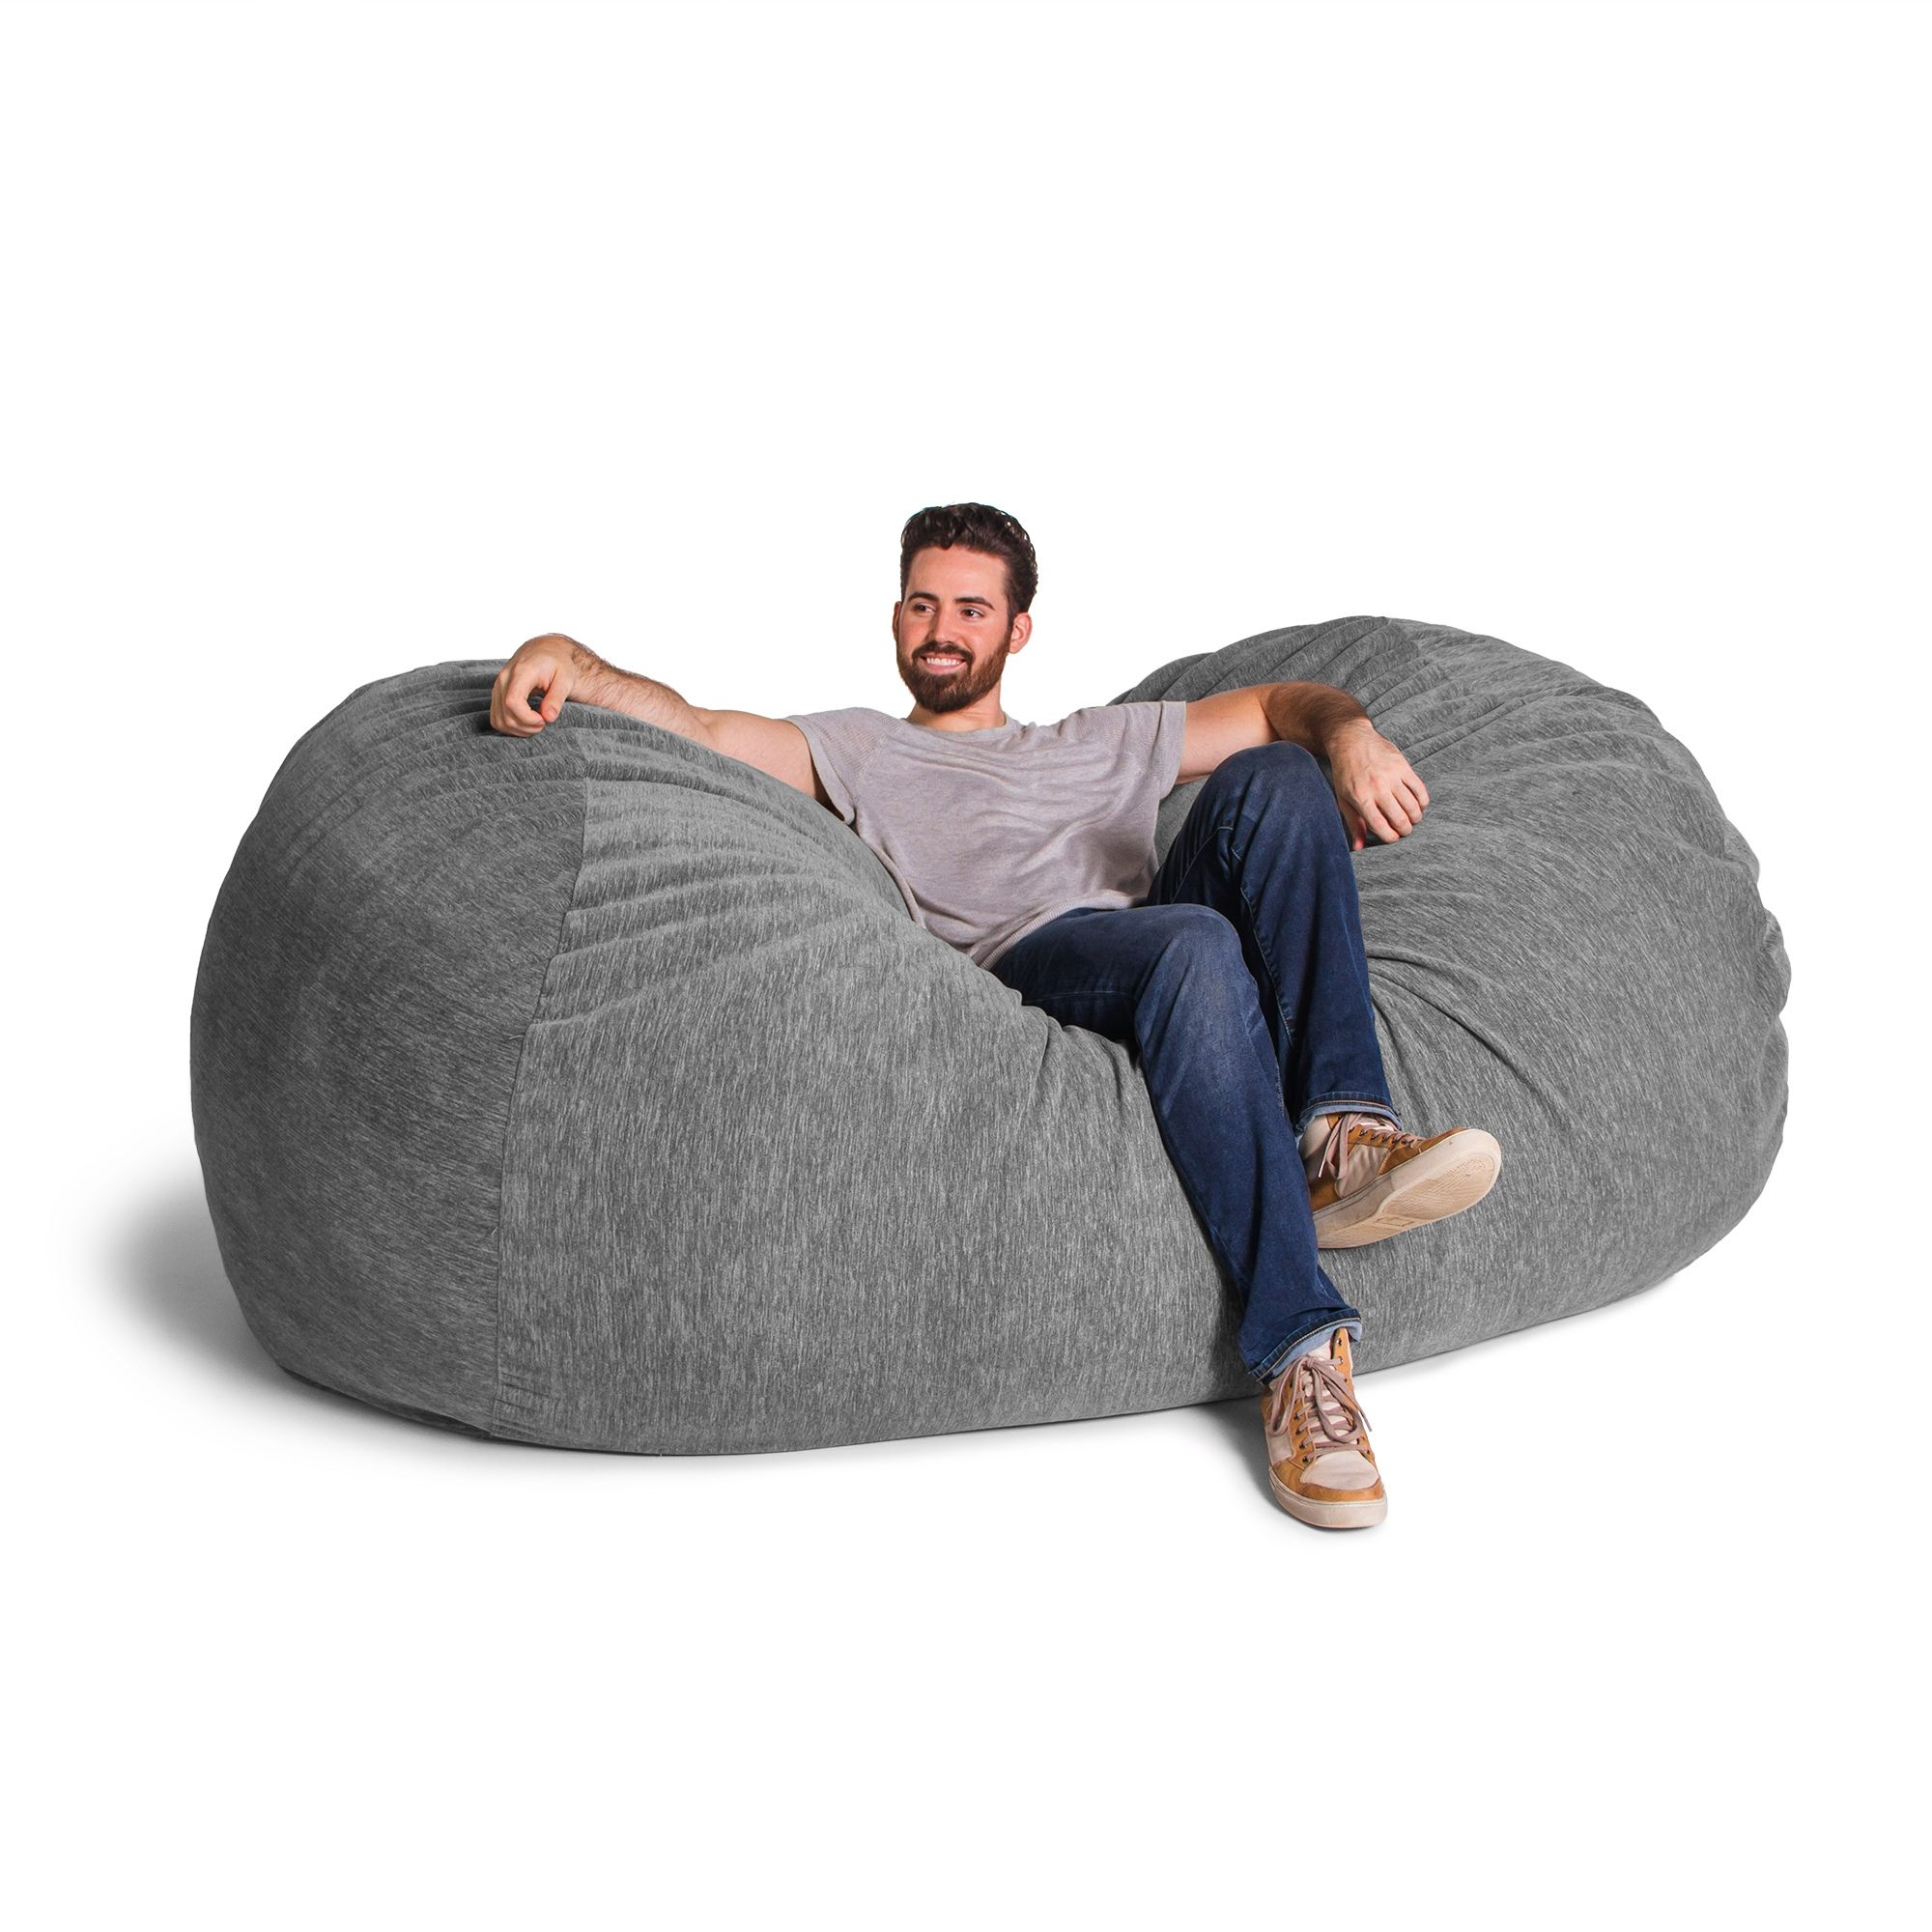 Grey Chenille 7 Foot Jaxx Lounger Bean Bag Chair